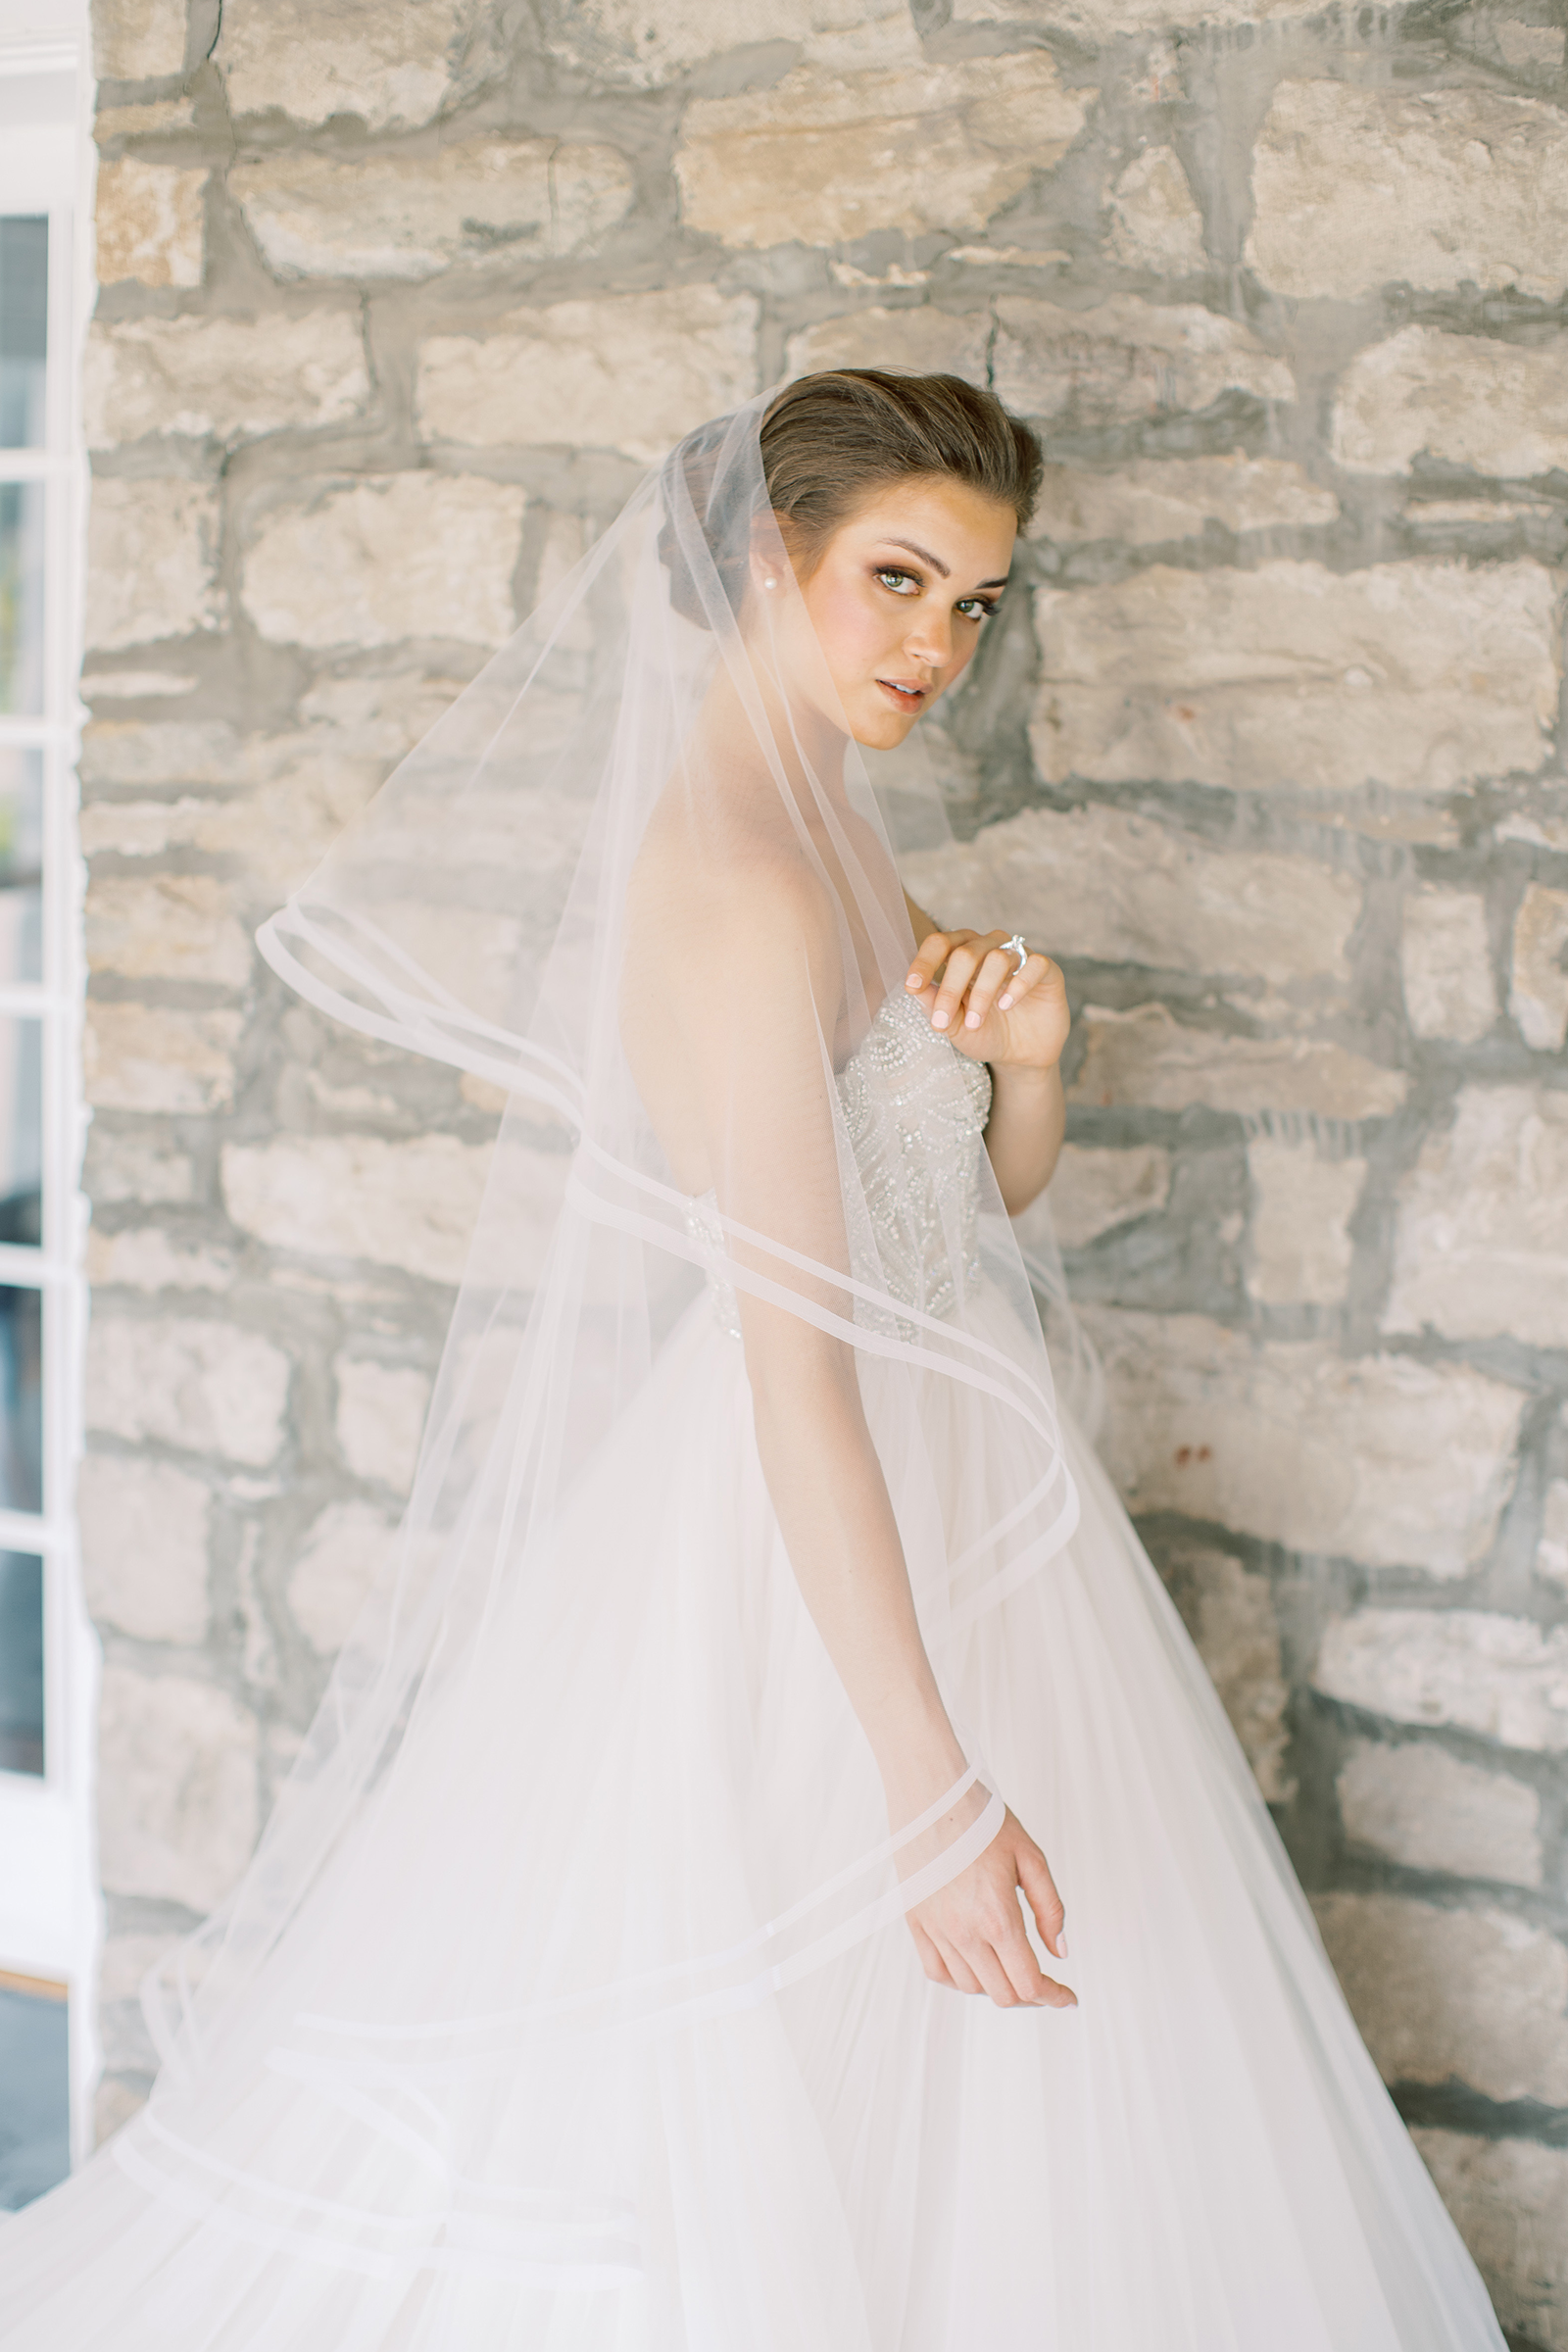 A tiered, waltz length veil, the Tart style is trimmed with a double border of woven horsehair which provides both body and a dramatic aesthetic.